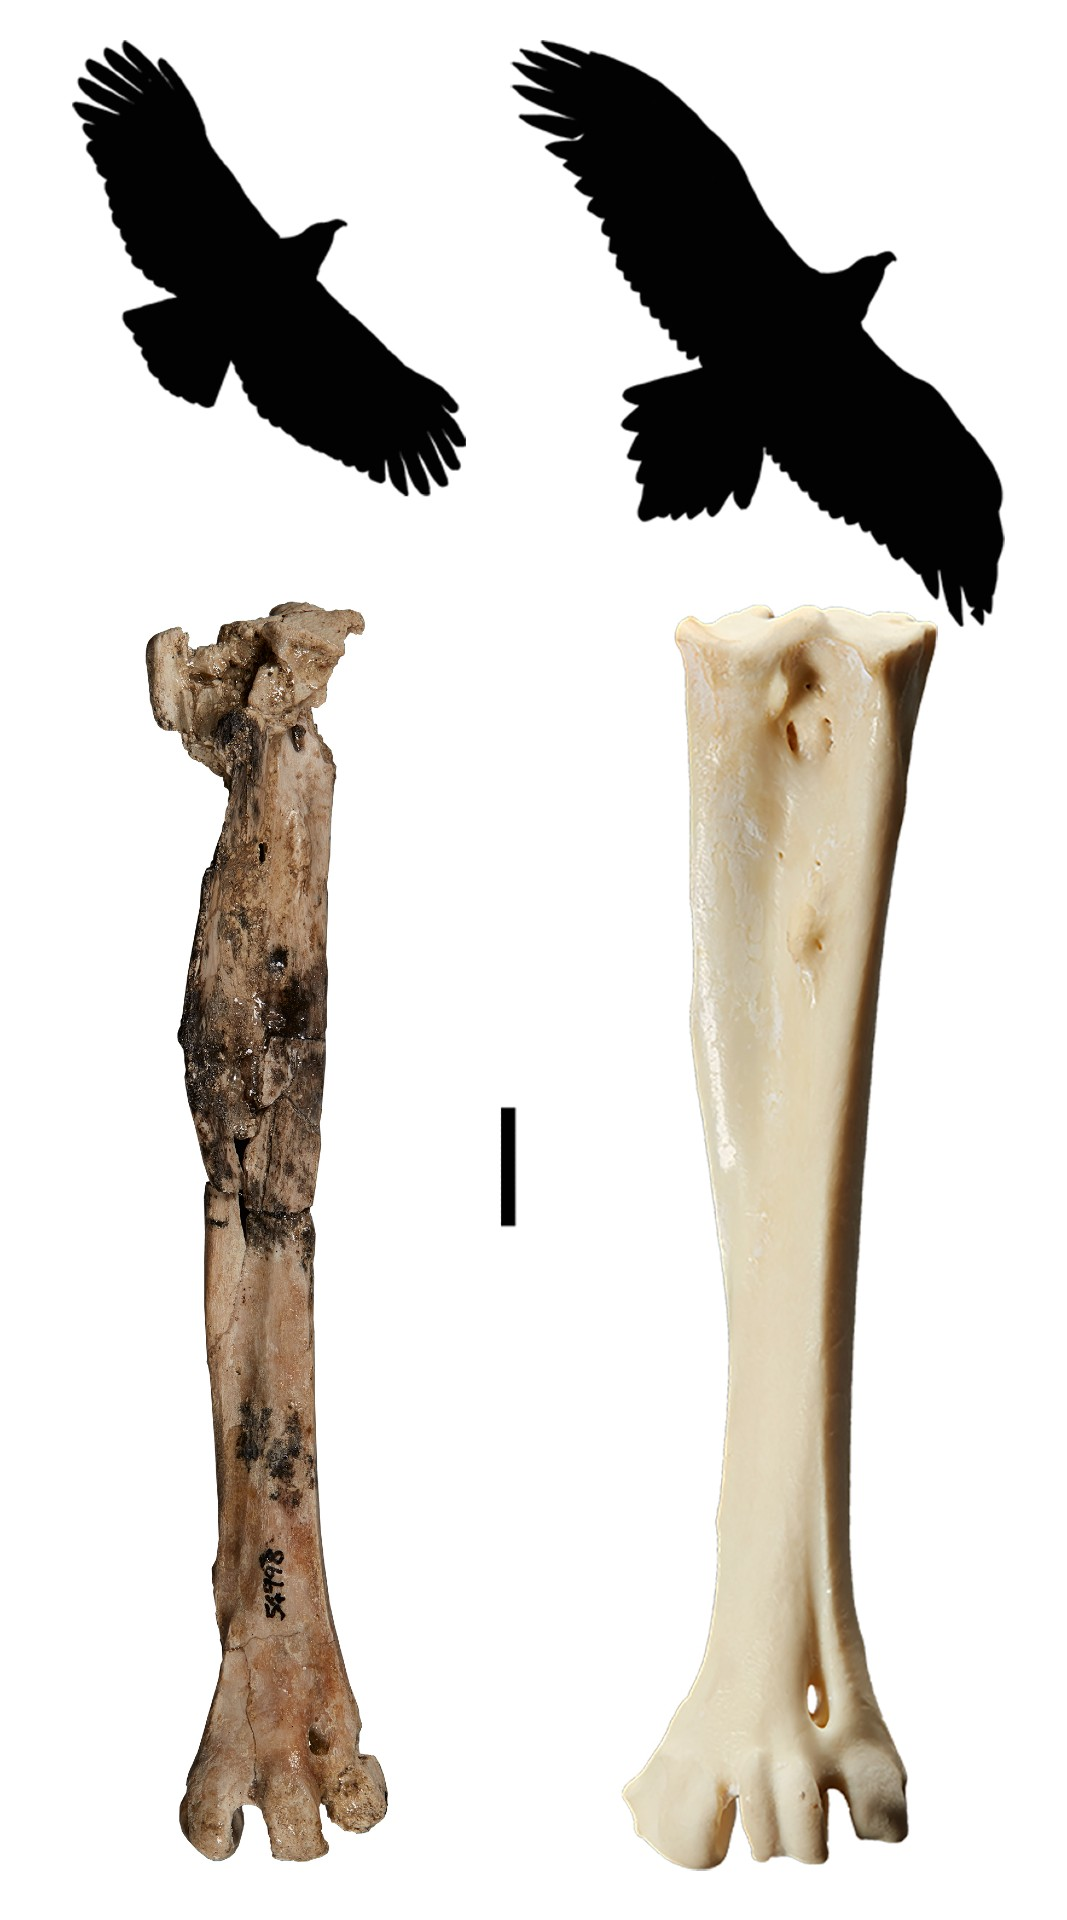 Two silhouettes of eagles and two leg bones